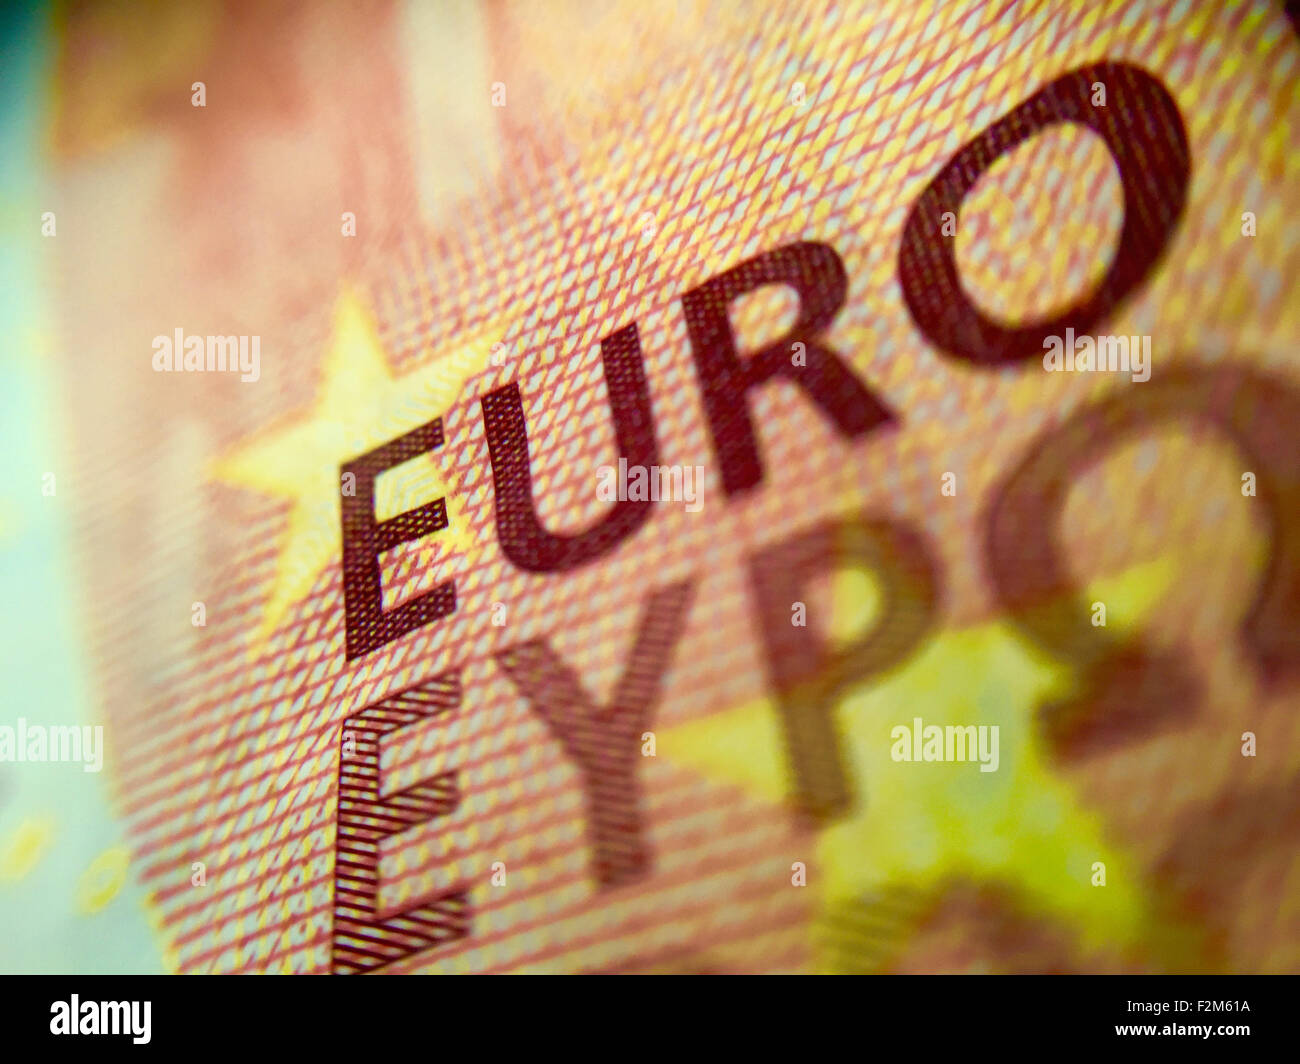 Close up of a 10 euro banknote - Stock Image